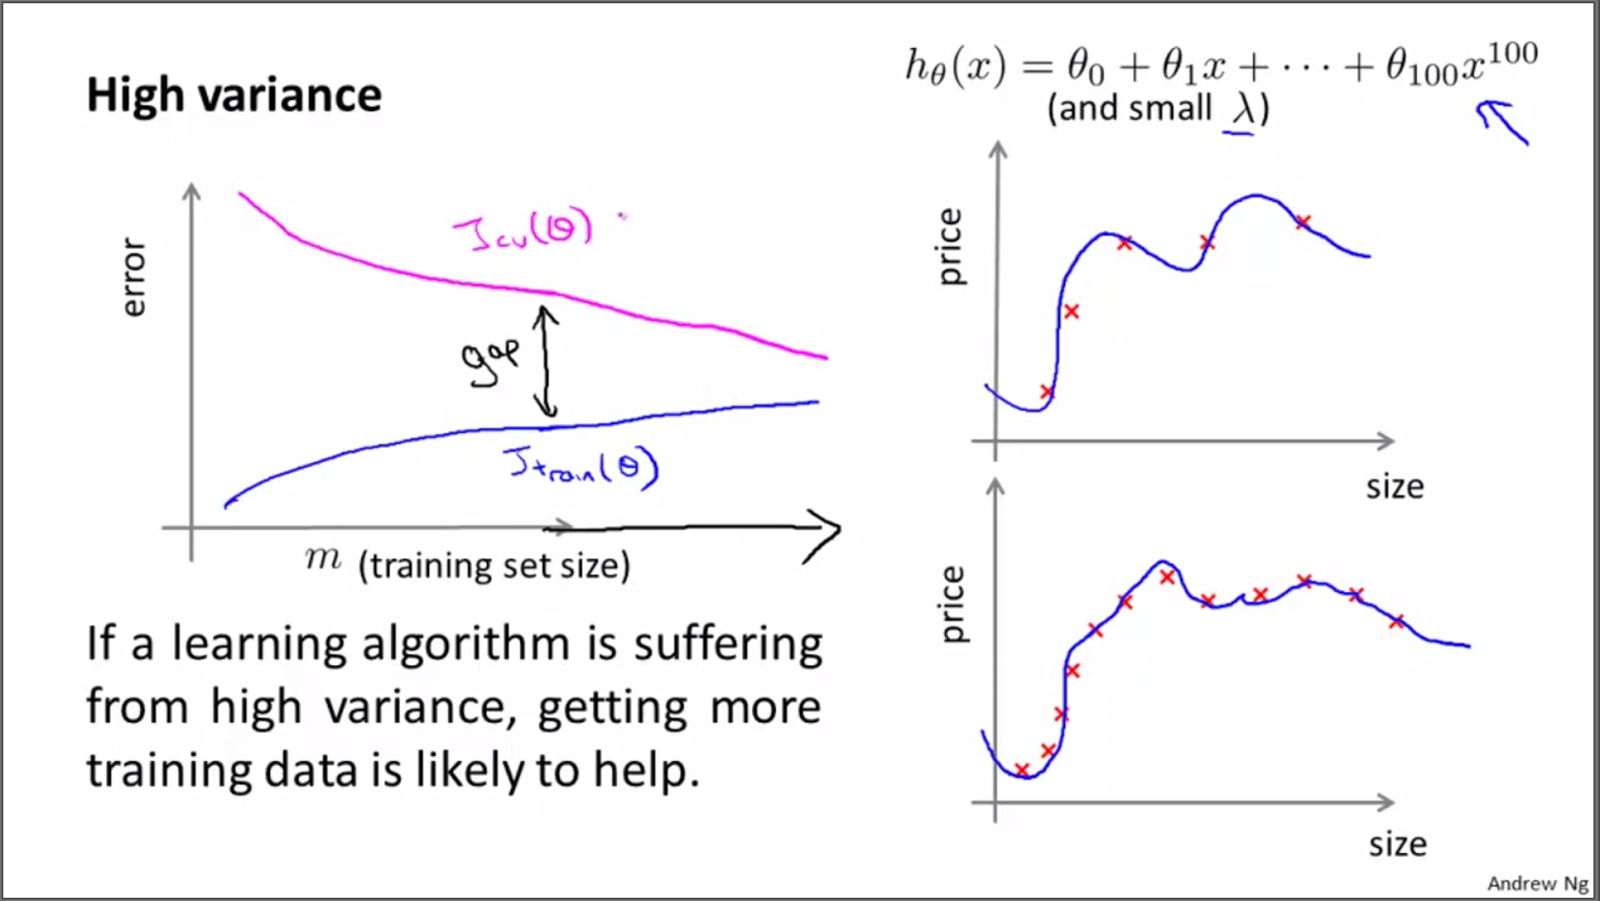 ANDREW NG MACHINE LEARNING COURSERA PRICE - Andrew Ng's